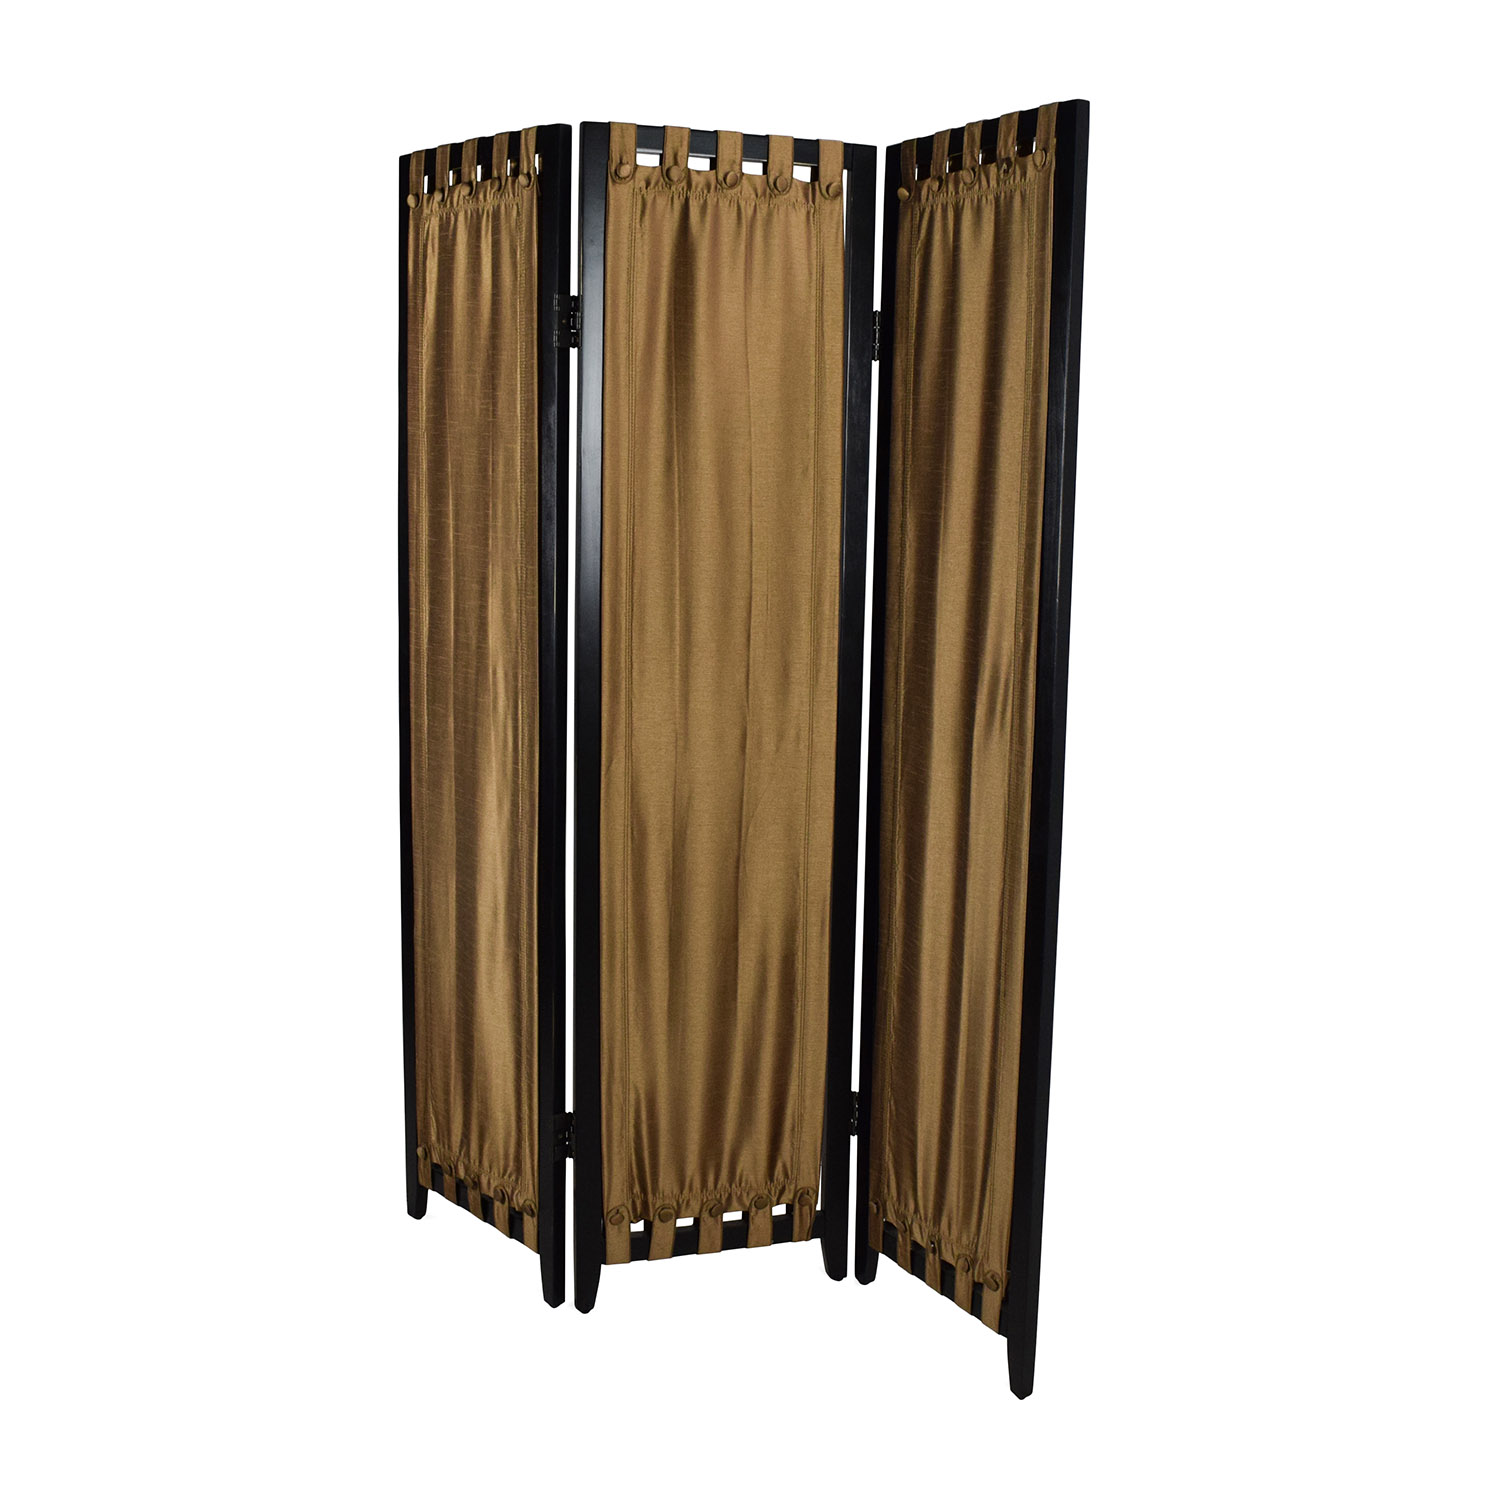 84 Off Pier 1 Imports Pier 1 Tabique Gold Room Divider